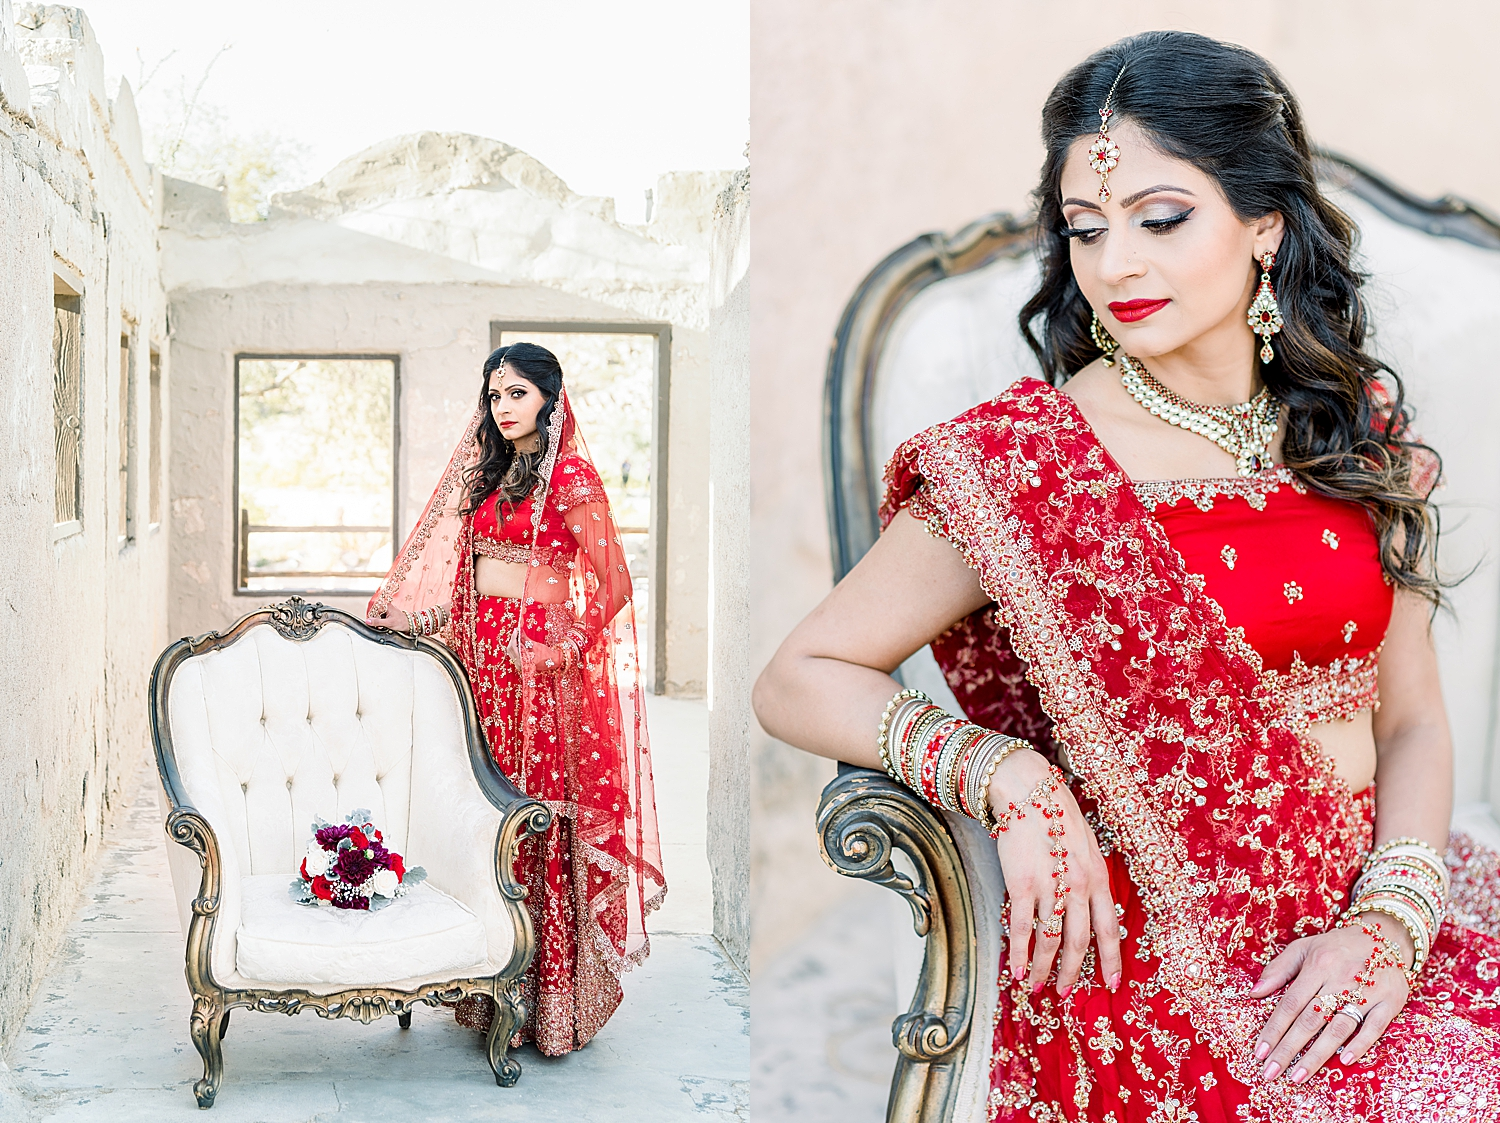 Indian Bridal Session with Neema Patel. Photos taken by Jade Min Photography in Phoenix, Arizona.